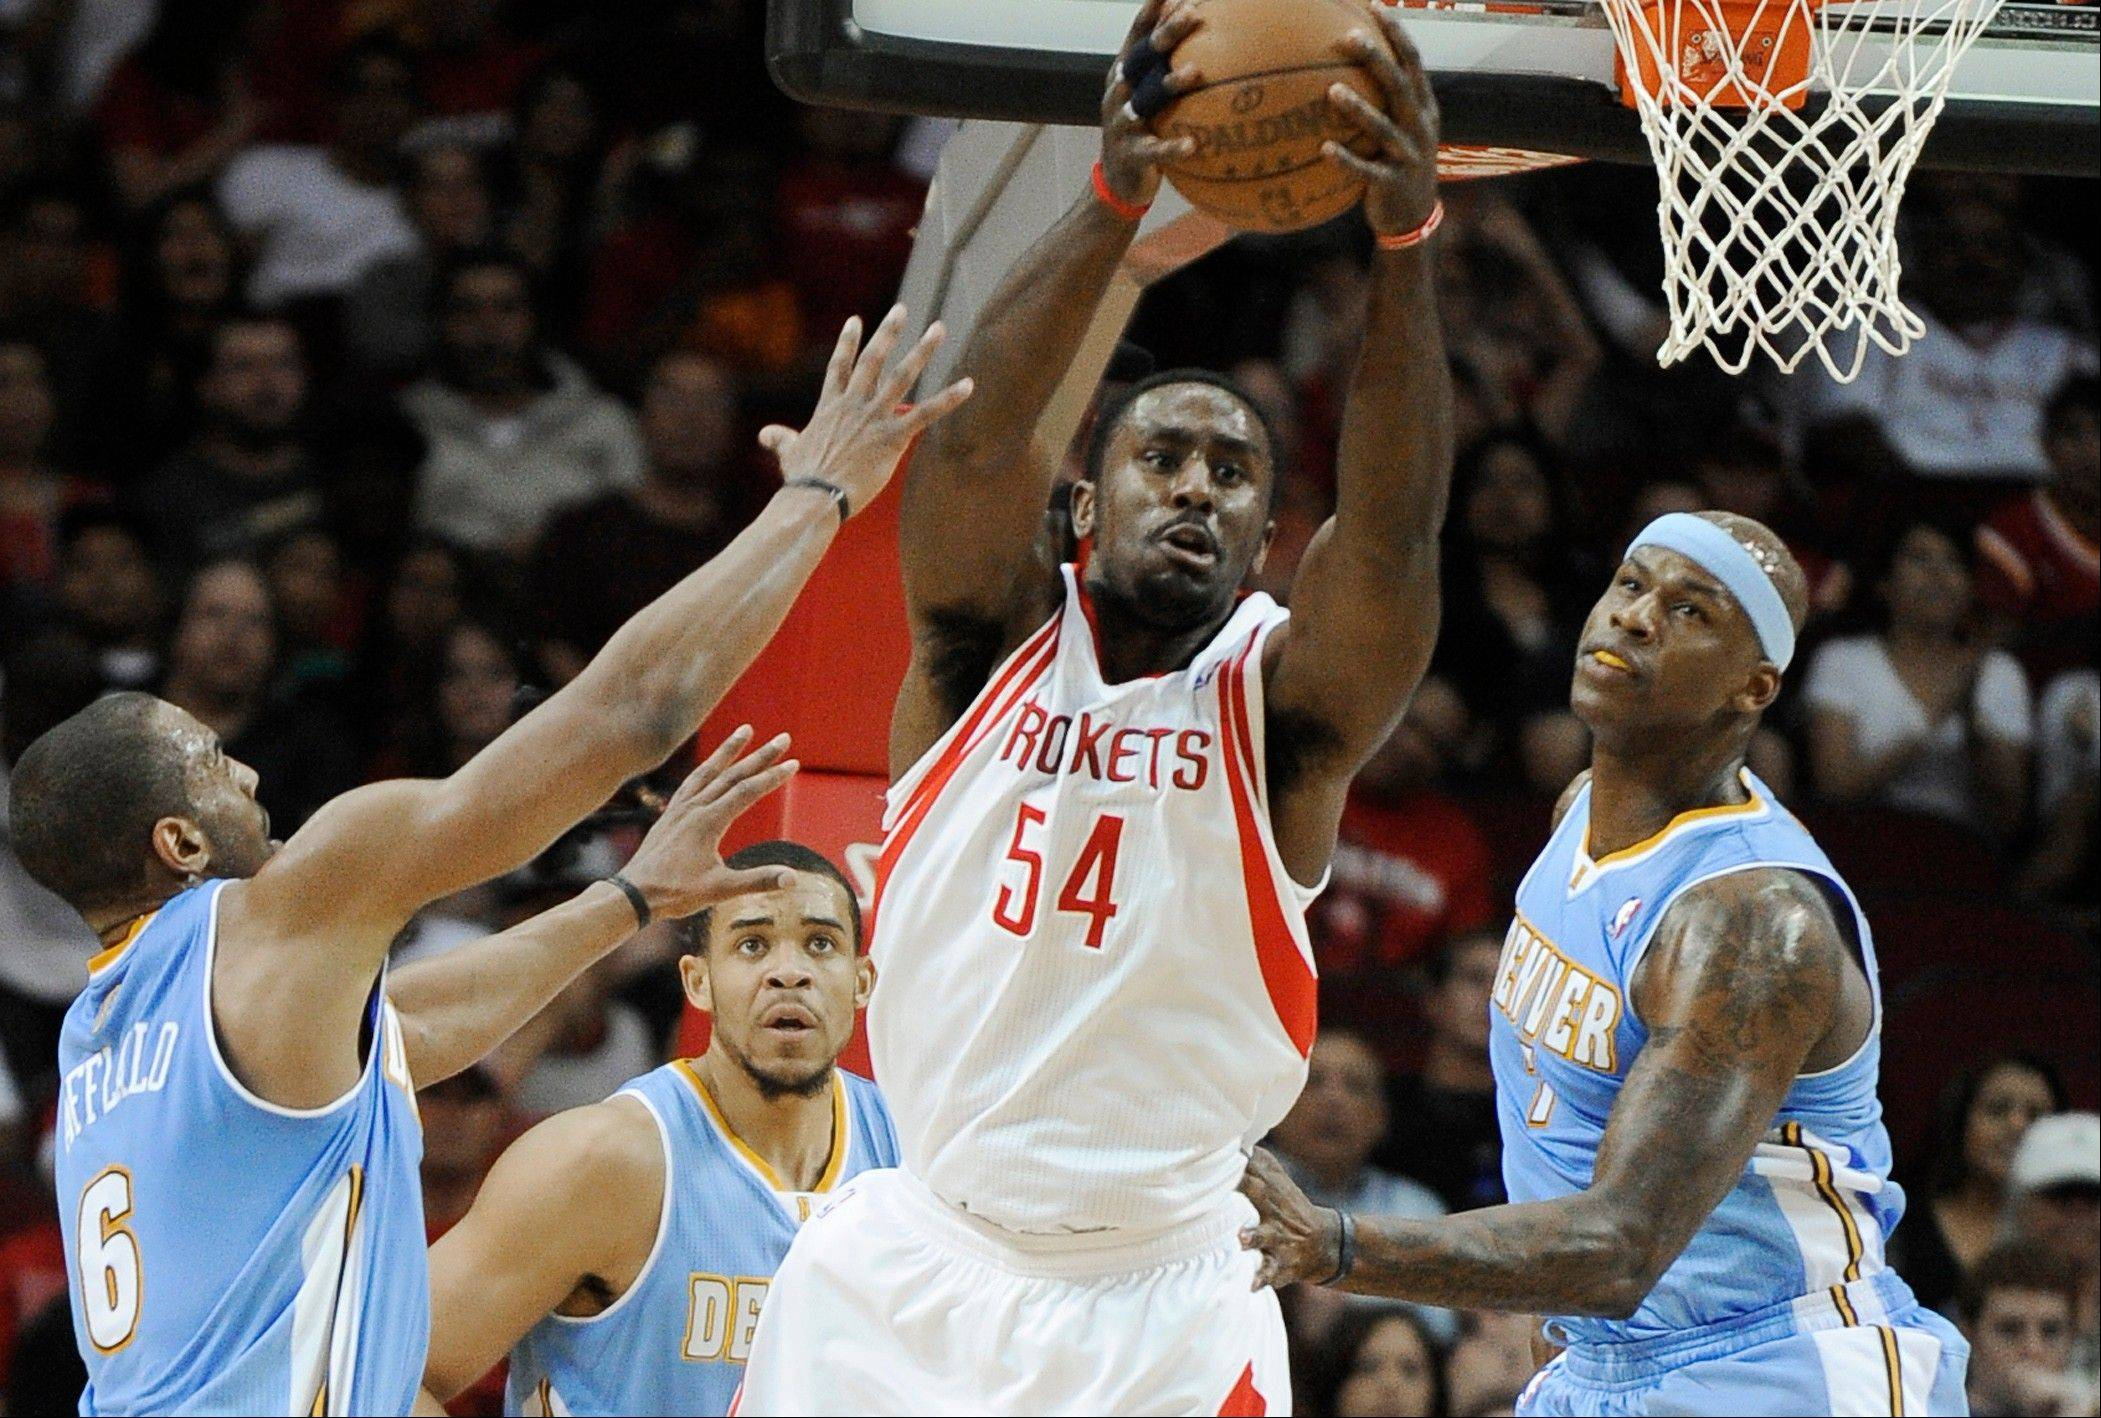 The Rockets' Patrick Patterson grabs a rebound while surrounded by Denver's Arron Afflalo (6), JaVale McGee, center, and Al Harrington, right, in the first half Monday in Houston.